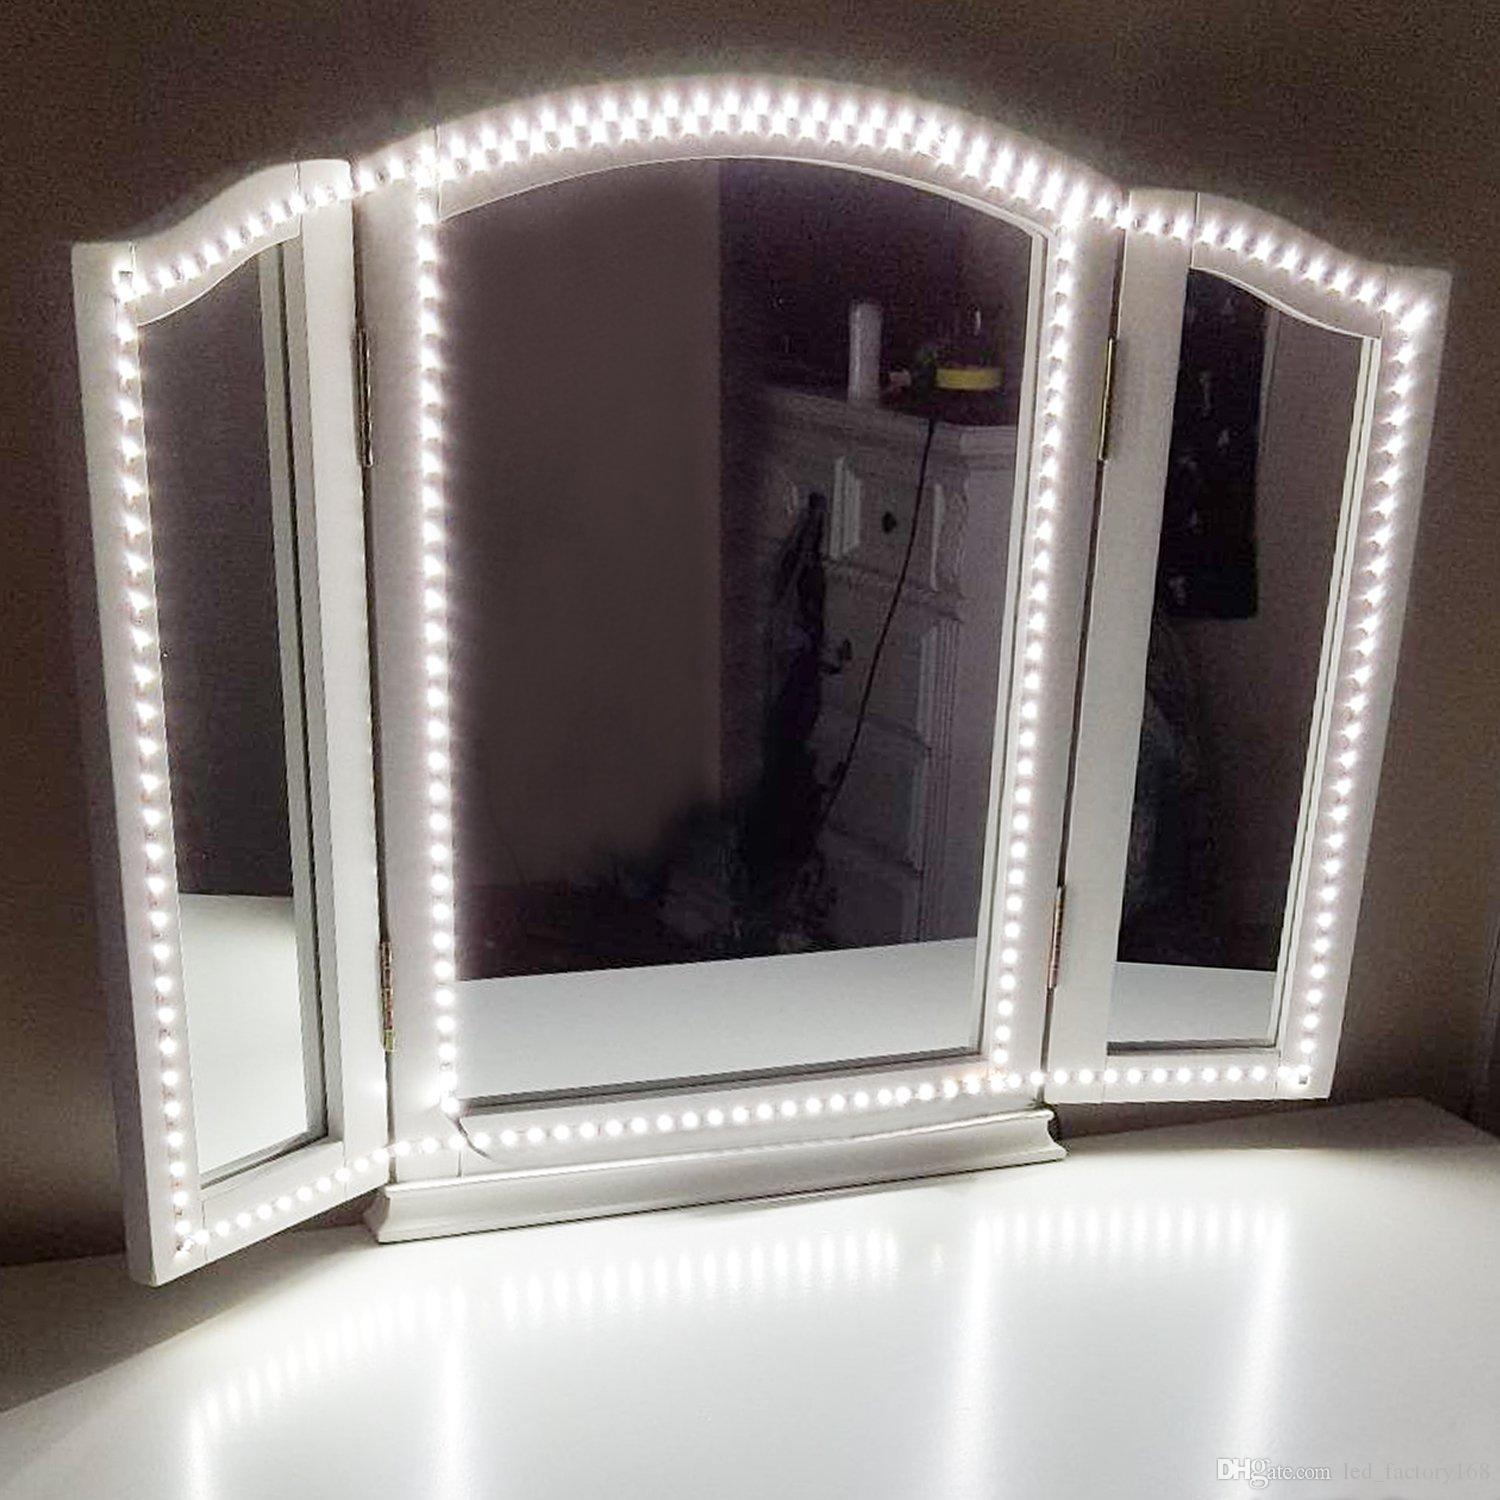 2019 Led Vanity Mirror Lights Kit For Makeup Dressing Table Vanity